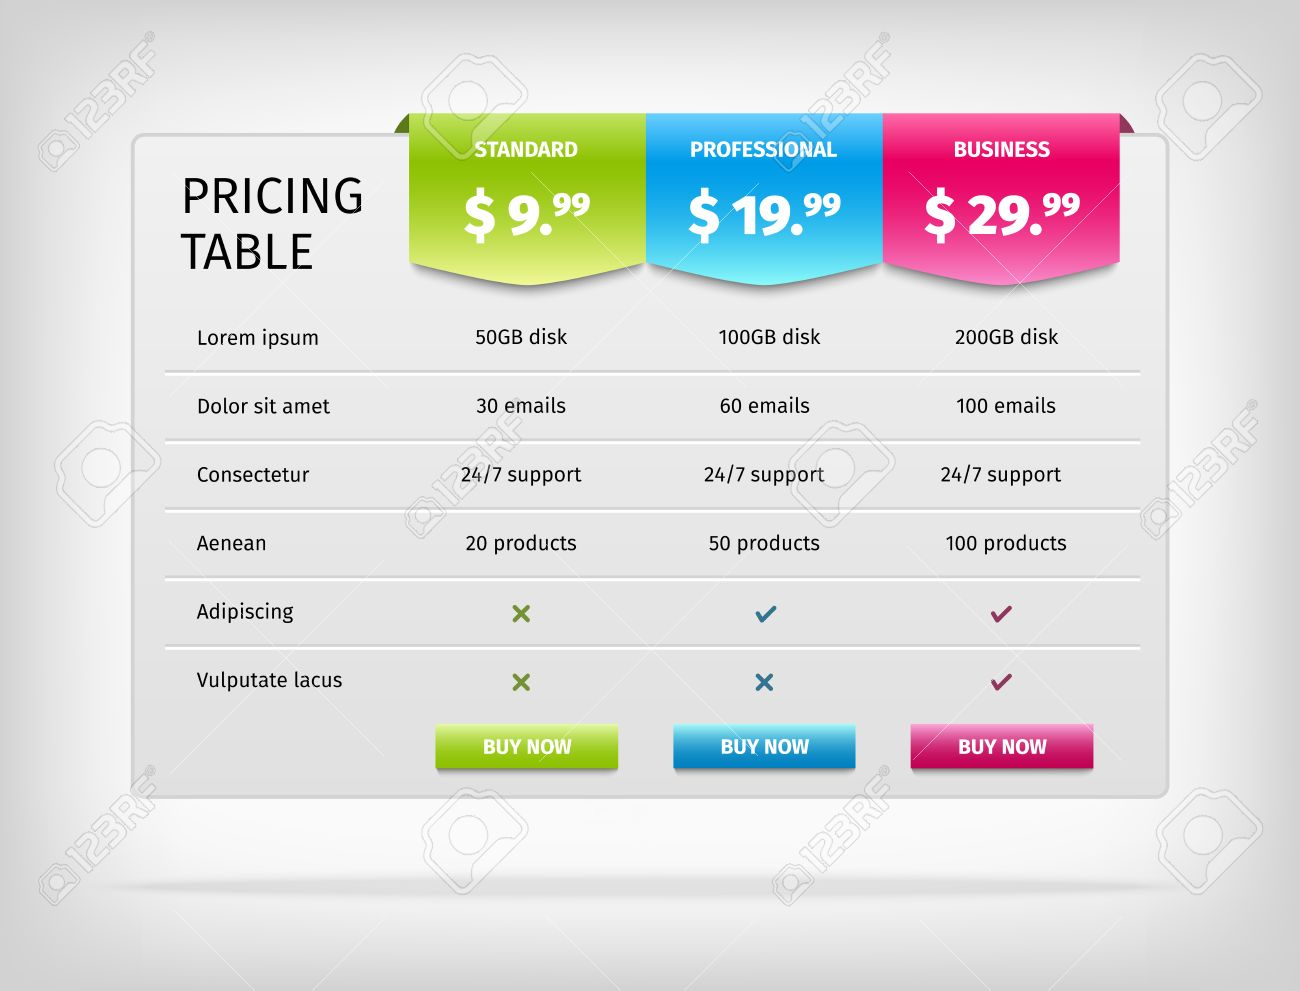 Pricing Table Template For Business Plan Comparison Chart Royalty